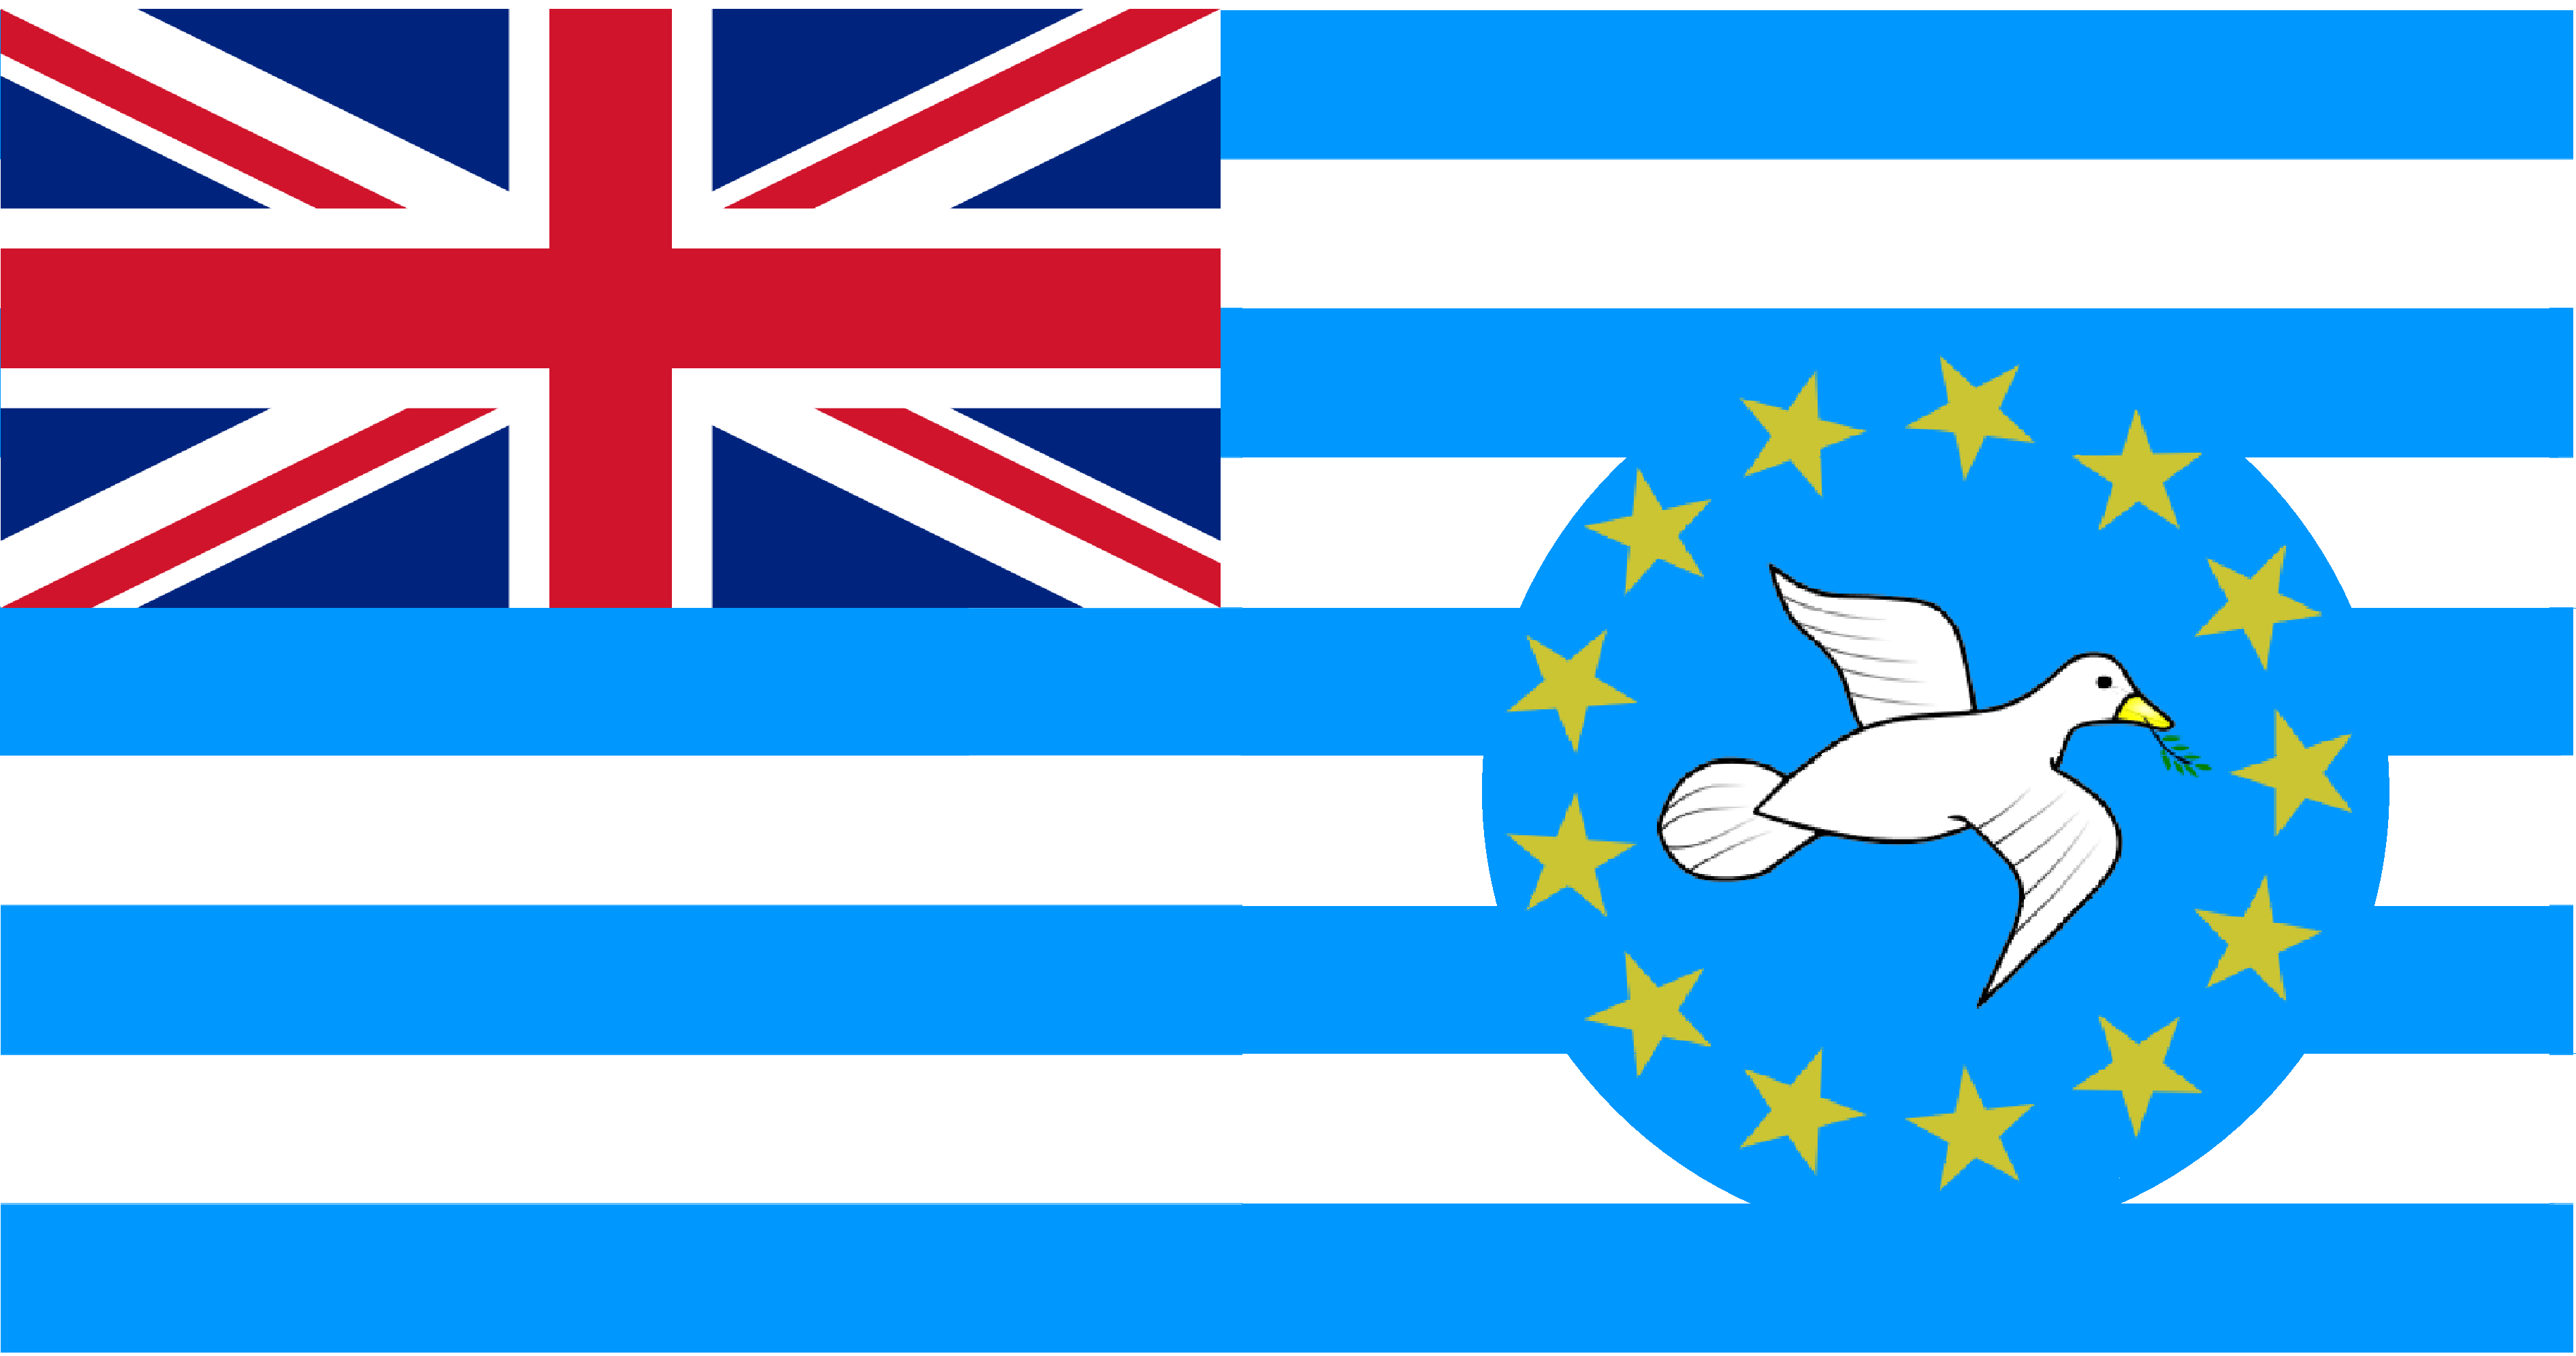 Of Southern Cameroons Freedom Fighters And Irish Republican Army